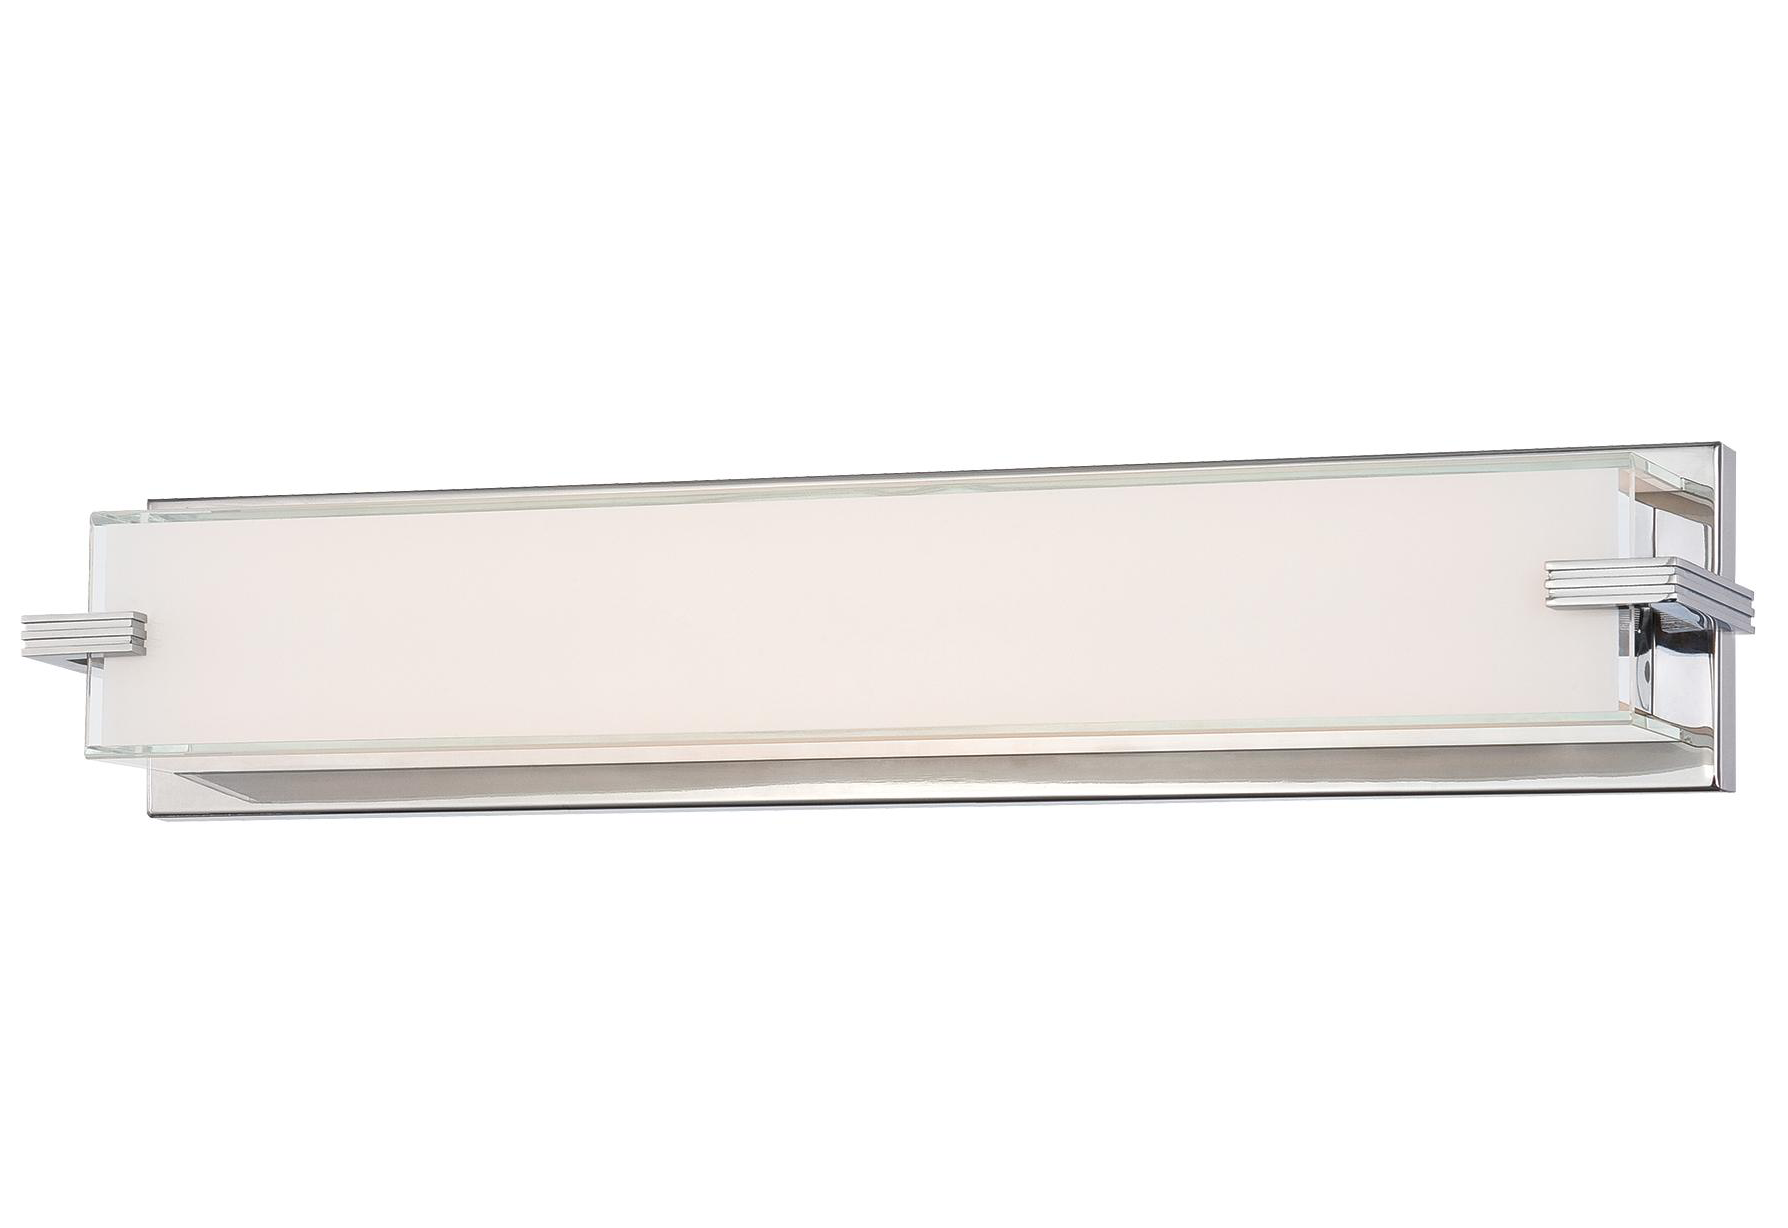 Cubism Led Linear Bathroom Vanity Light By George Kovacs P5219 077 L Lighting Bathroom Vanity Lighting Vanity Lighting Under Cabinet Lighting